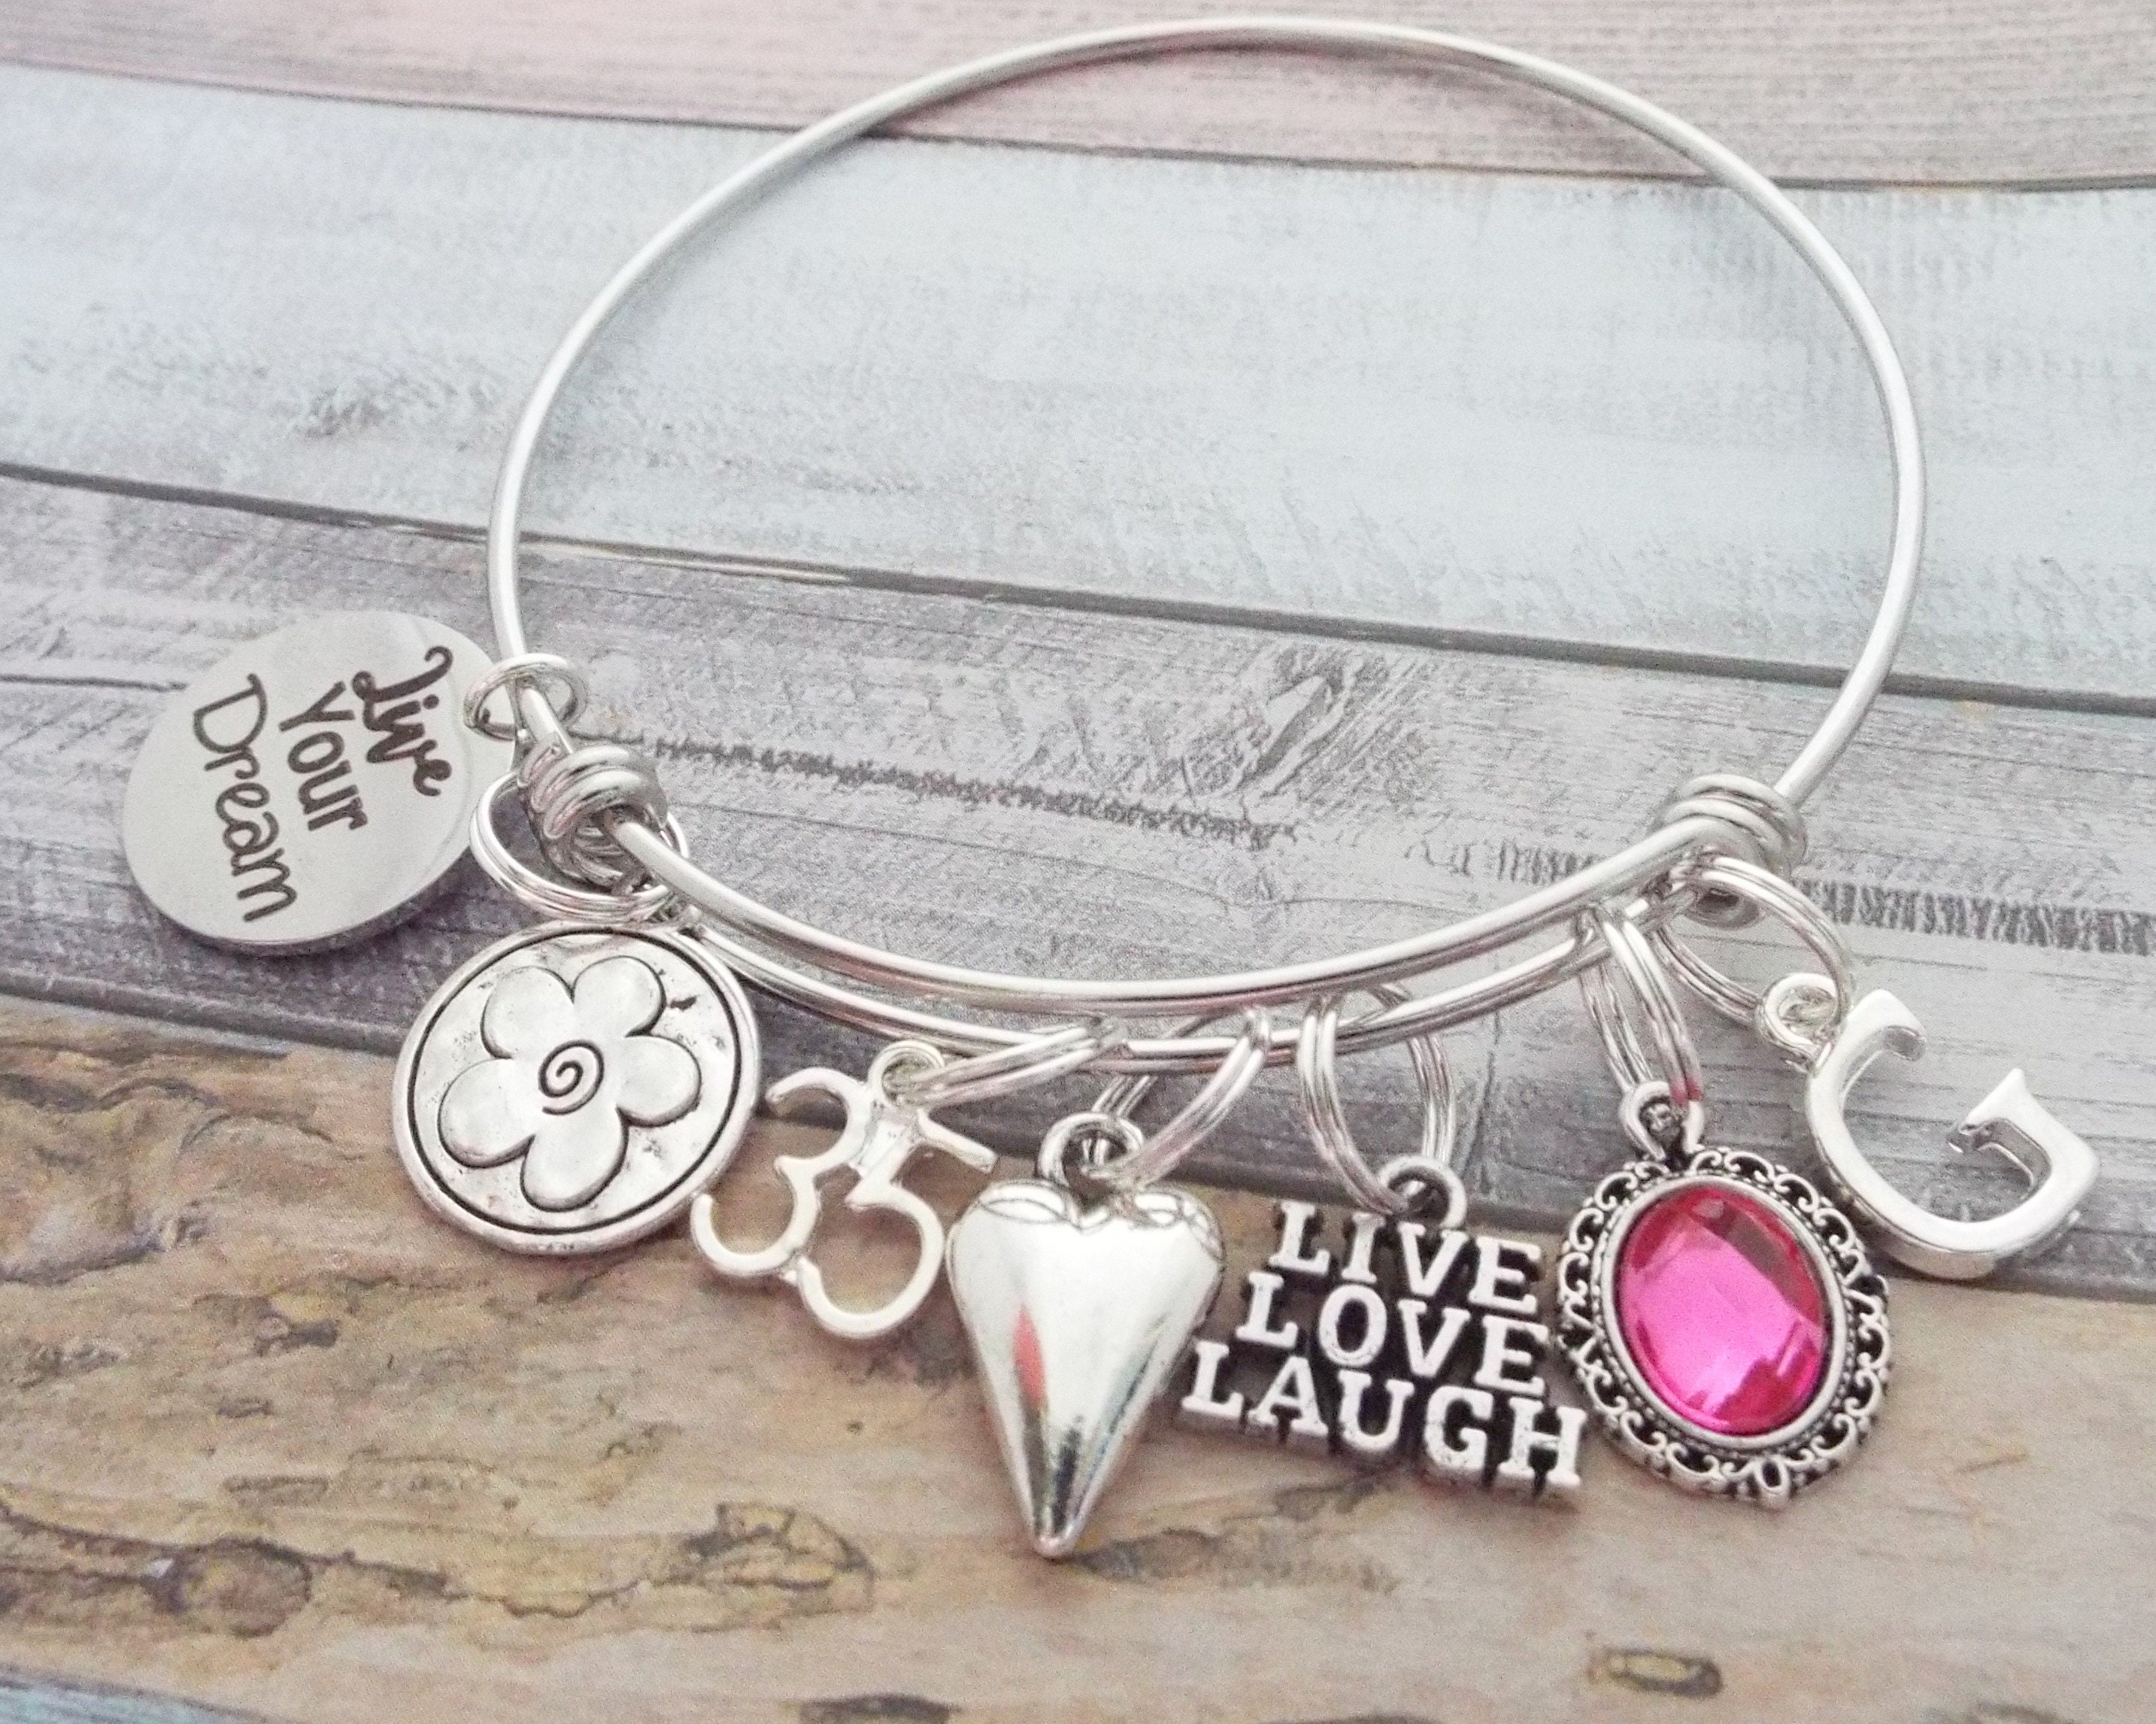 35th Birthday Gift Womens For Woman Turning 35 Charm Bracelet Personalized Her